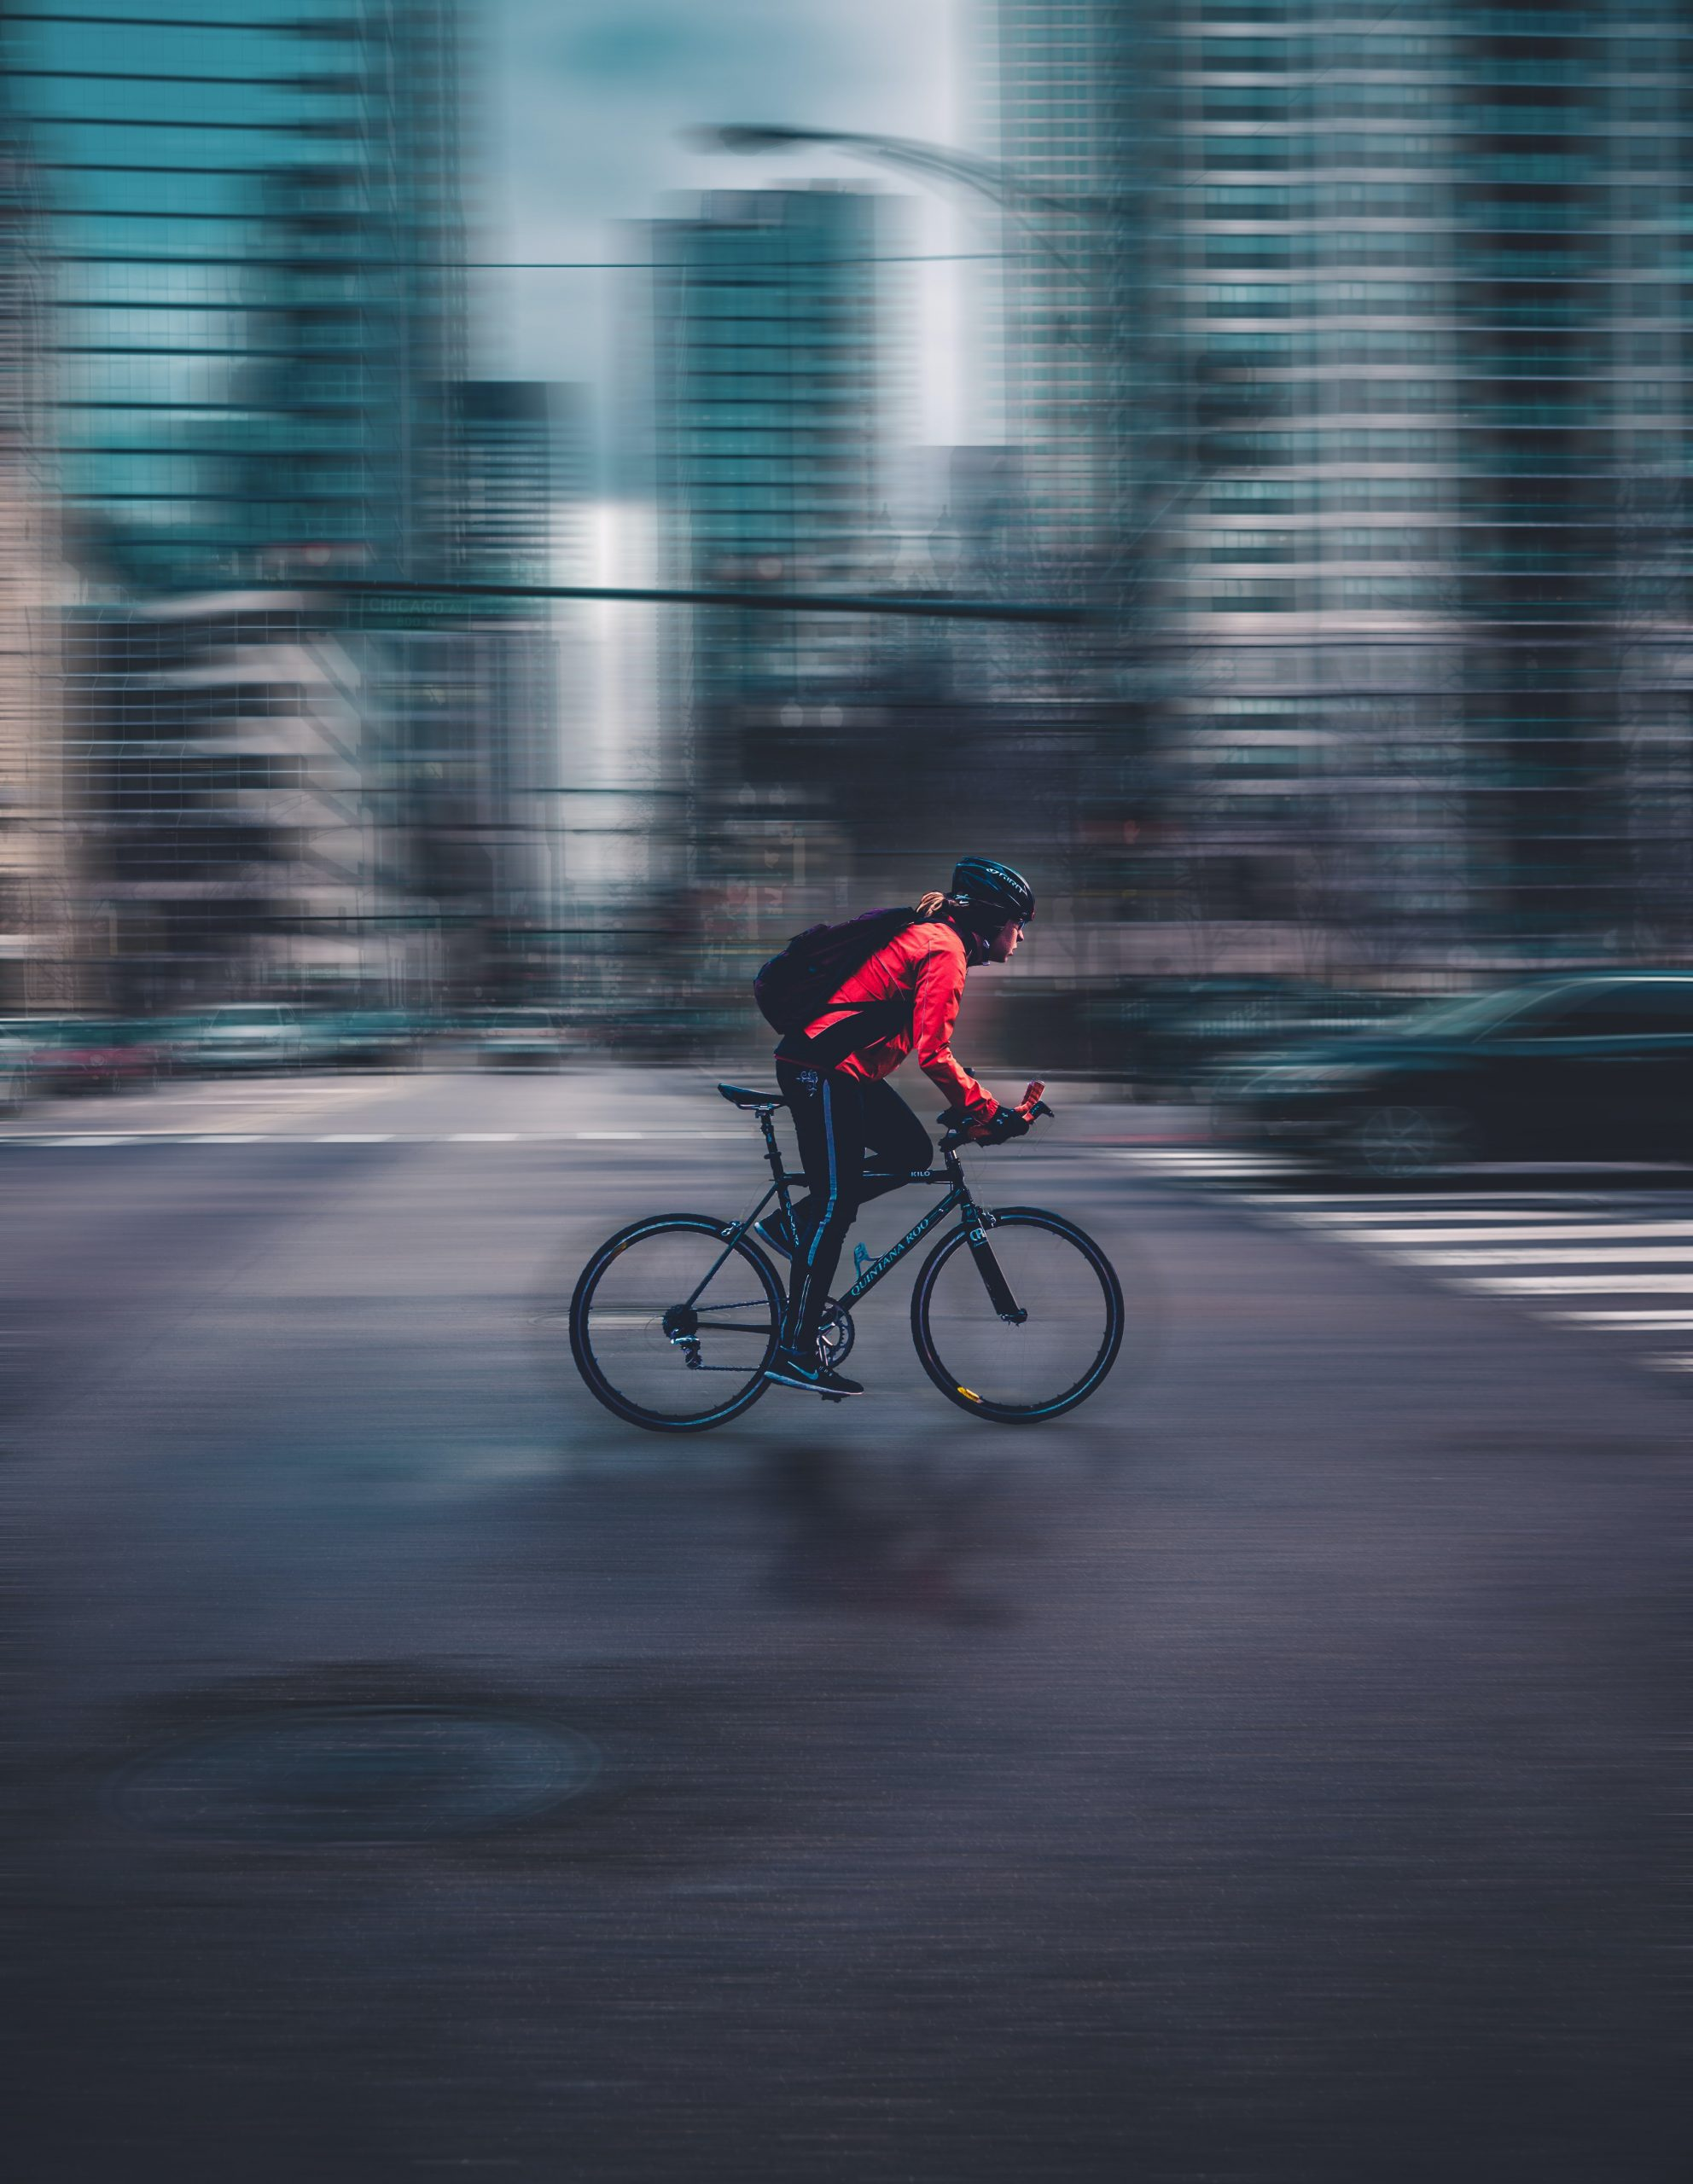 a person cycling in a city